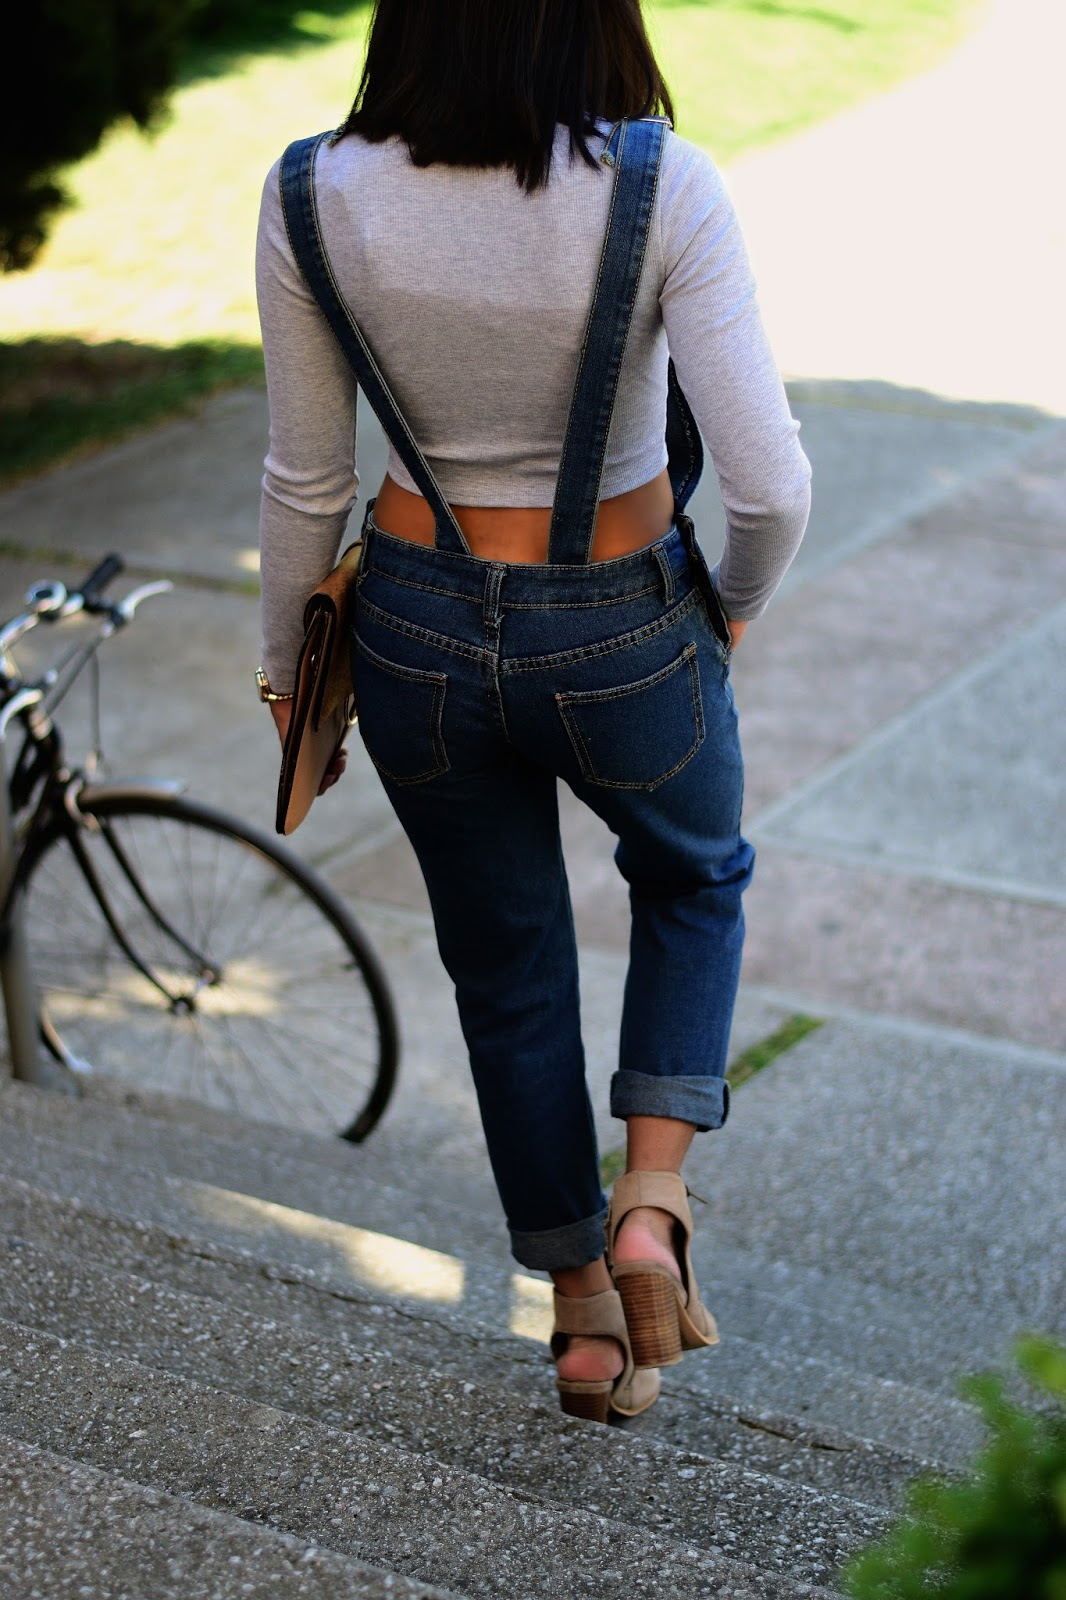 Dungarees outfit in spring